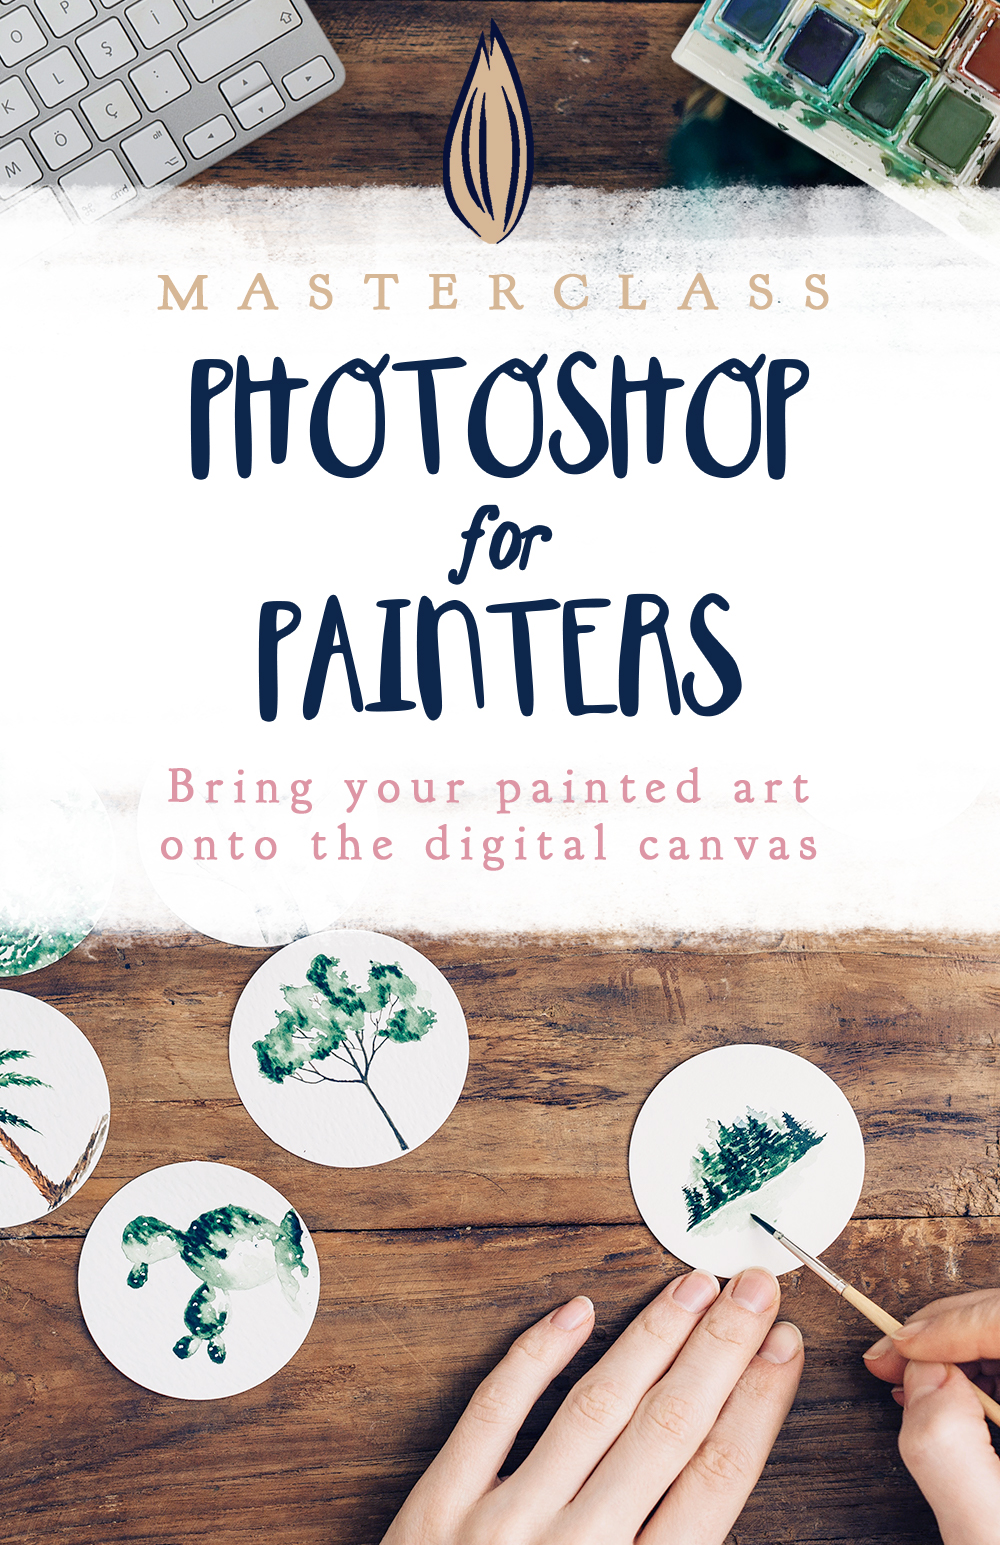 Photoshop for Painters: a masterclass for painters who want to bring their art into photoshop.